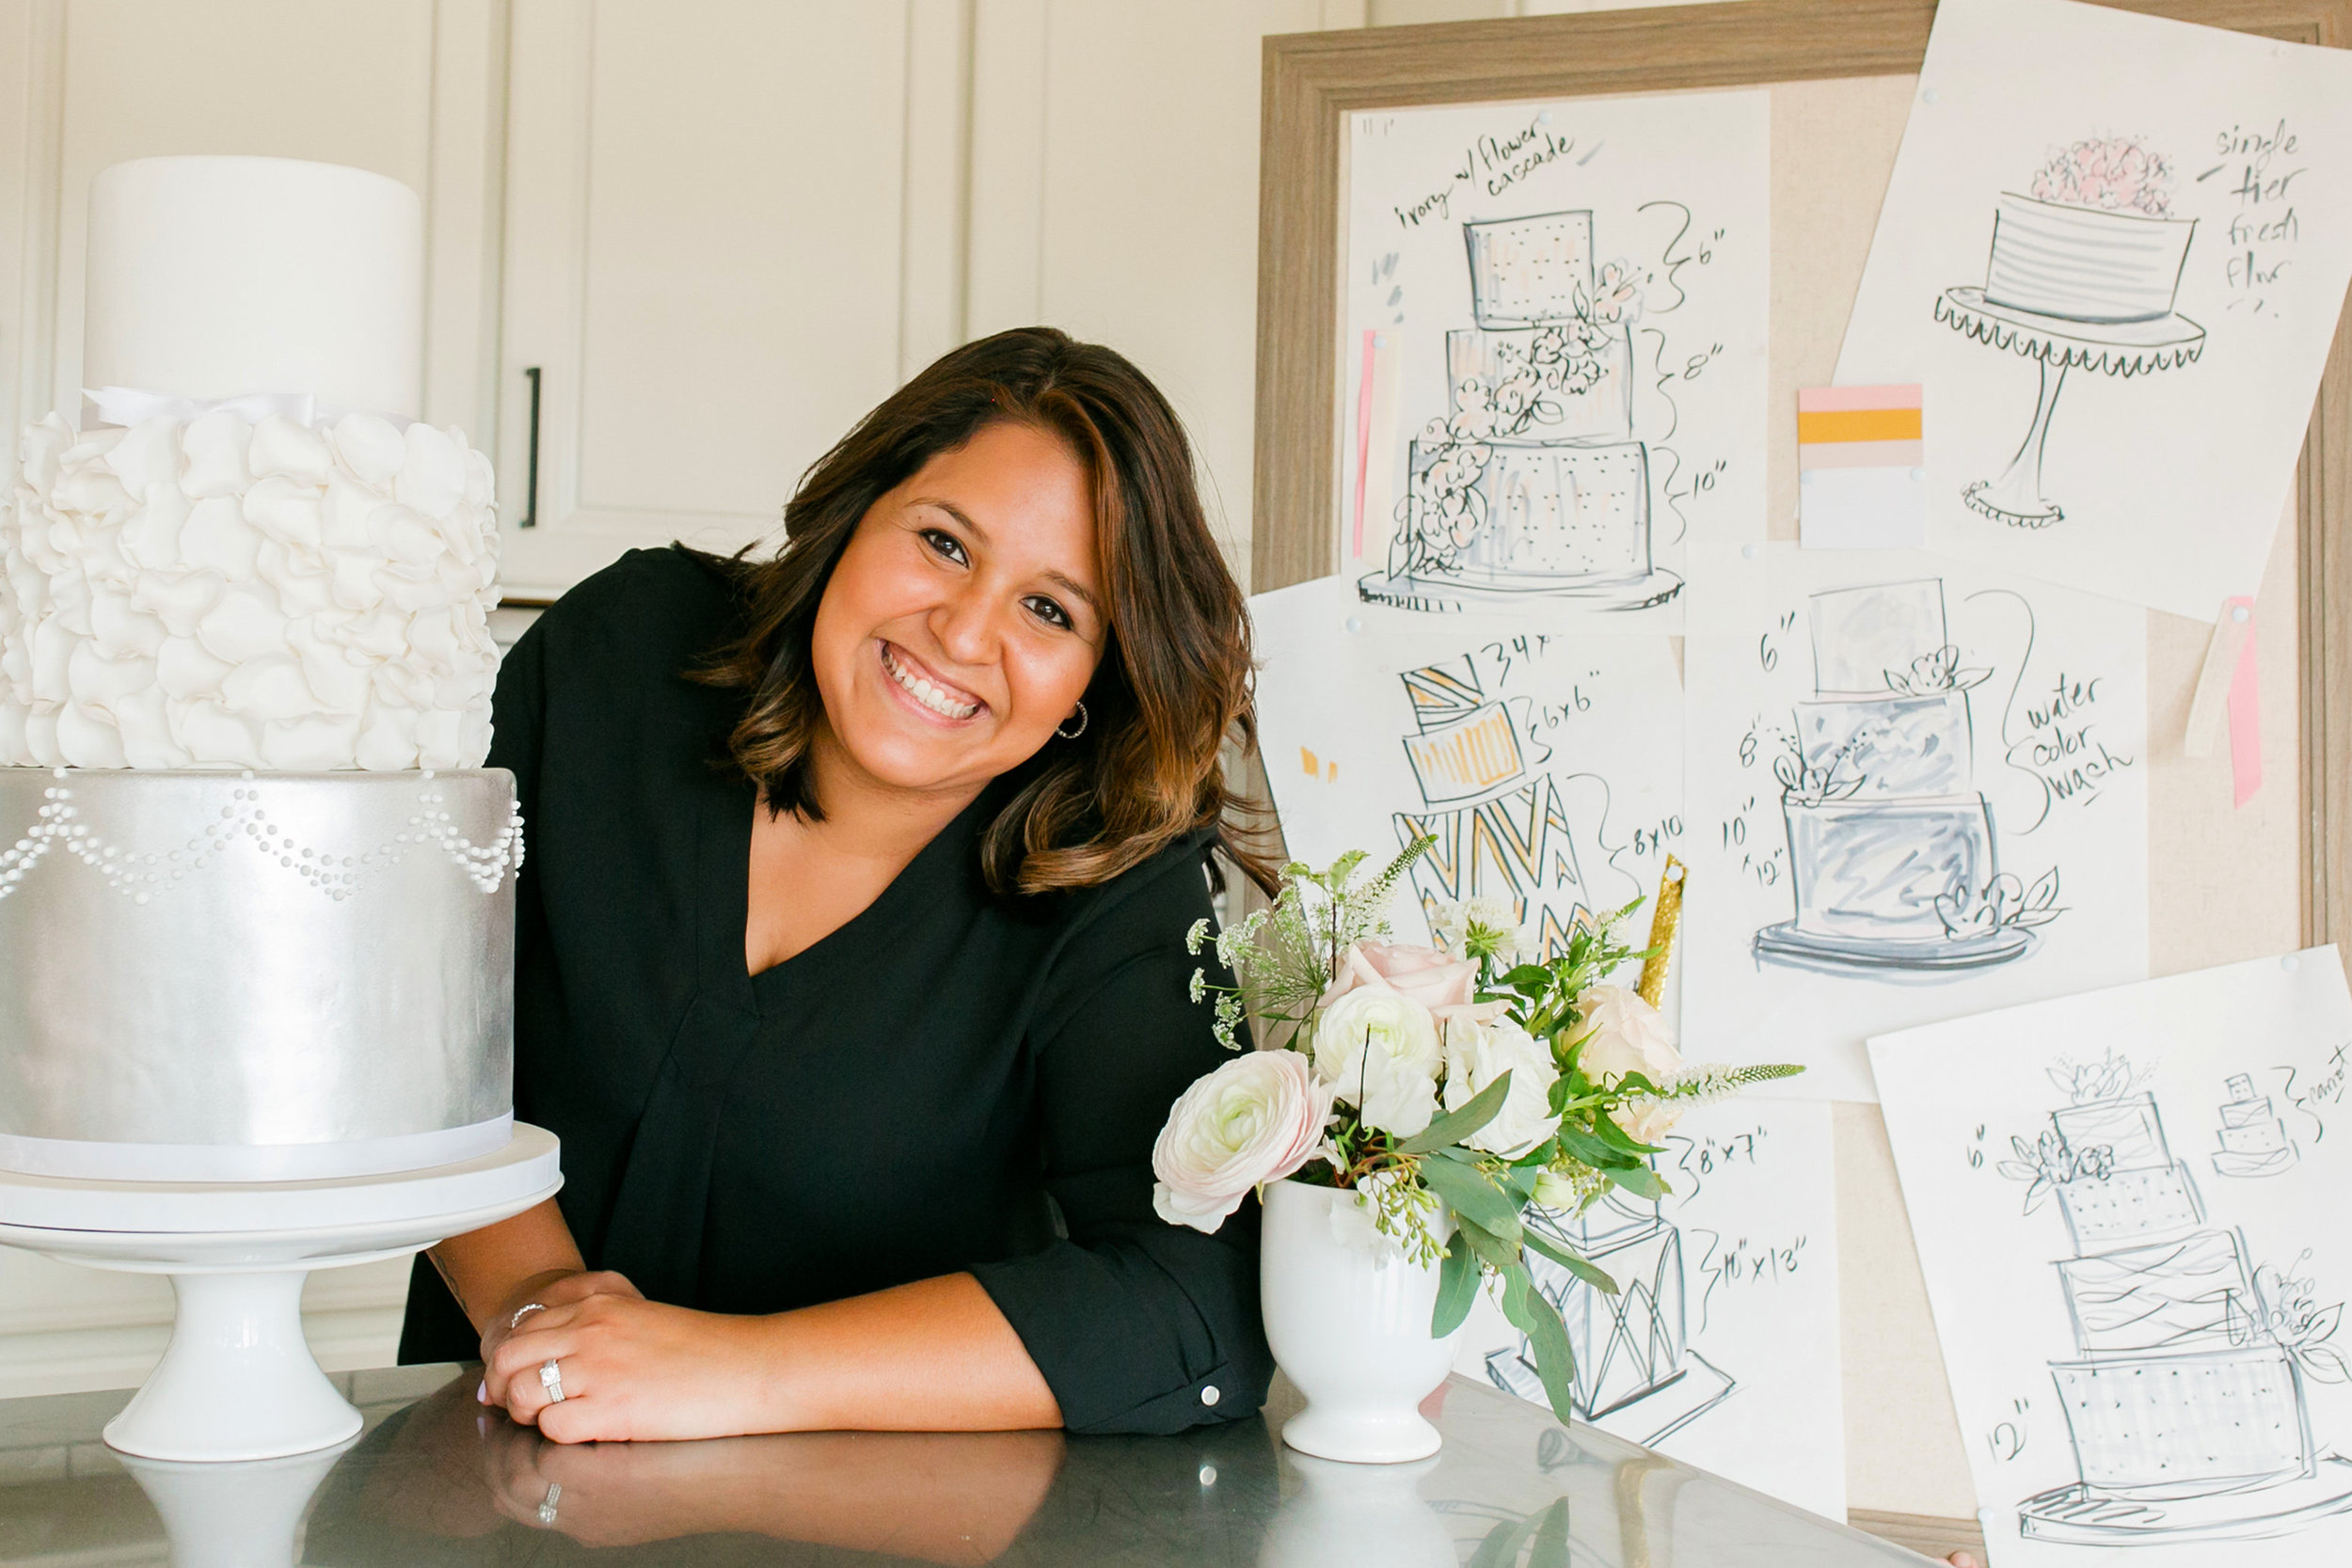 Kelly Sokolis, Owner & Wedding and Event Director